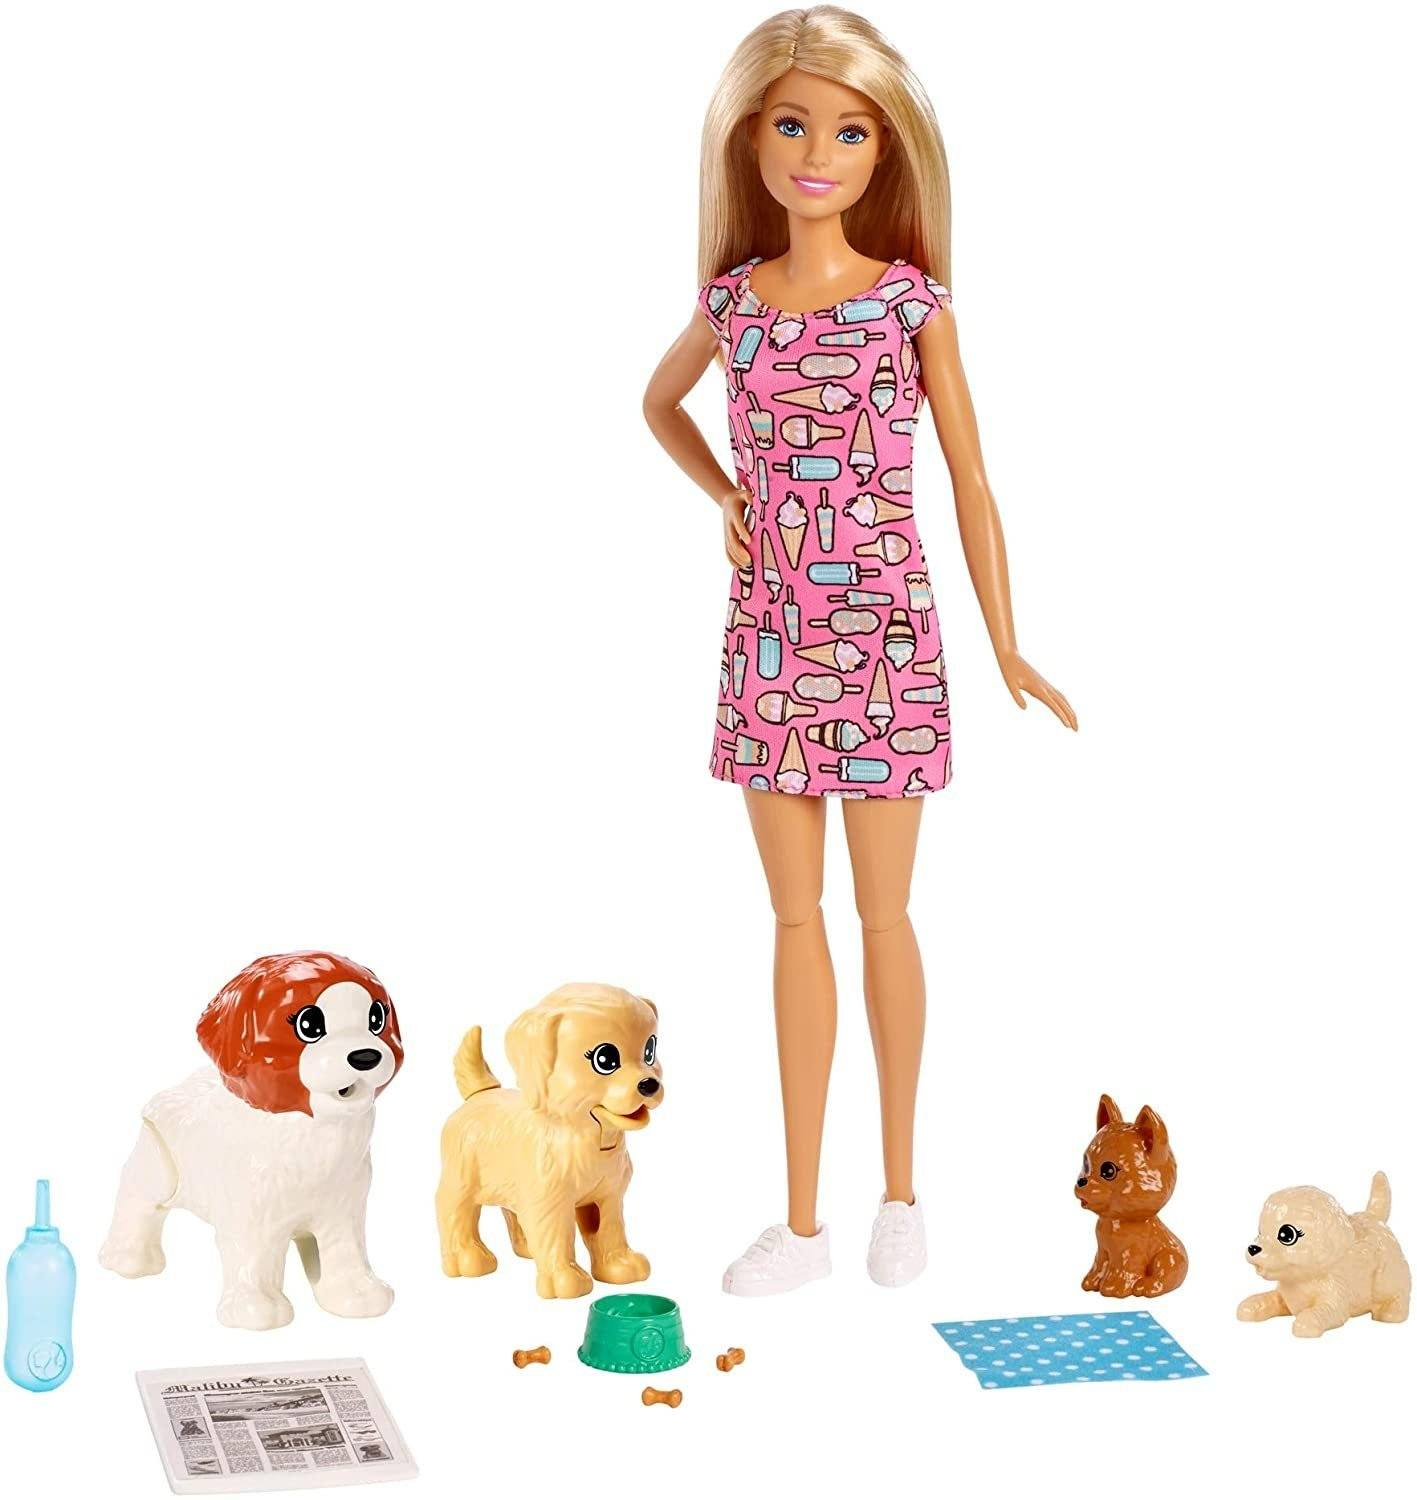 Barbie FXH08 Doggy Daycare Doll Dolls Barbie